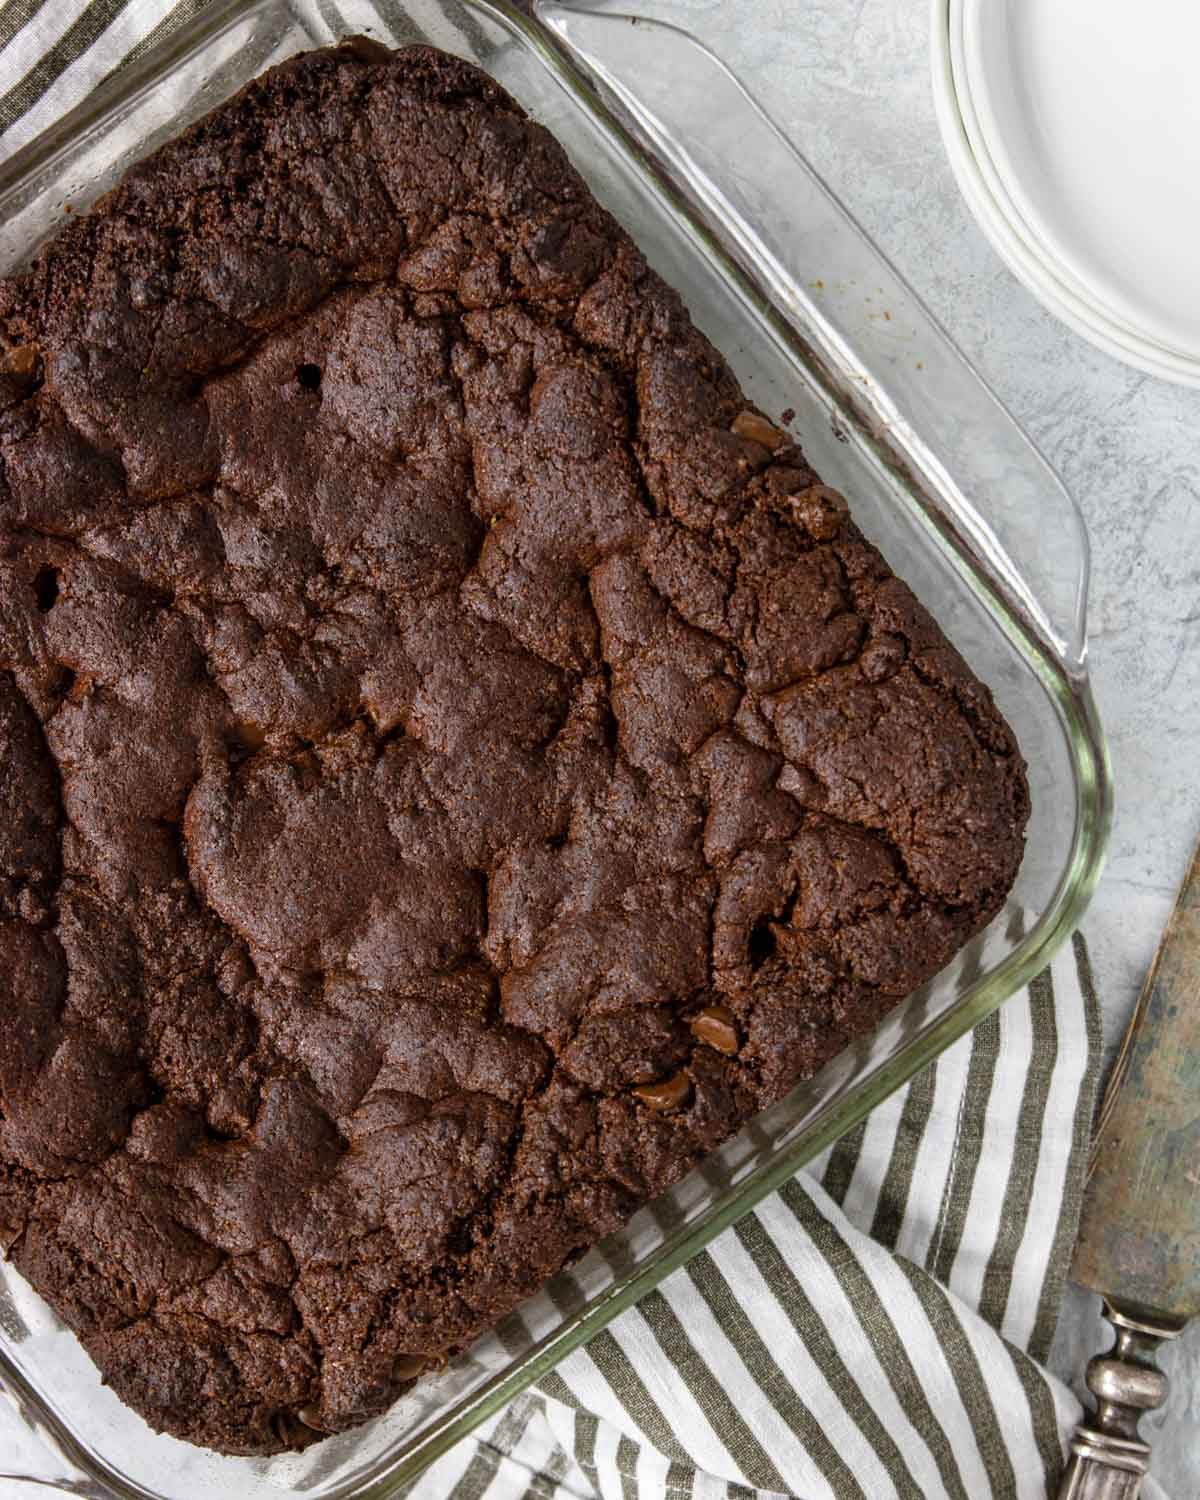 cake mix brownies baked in a 9x9 baking dish